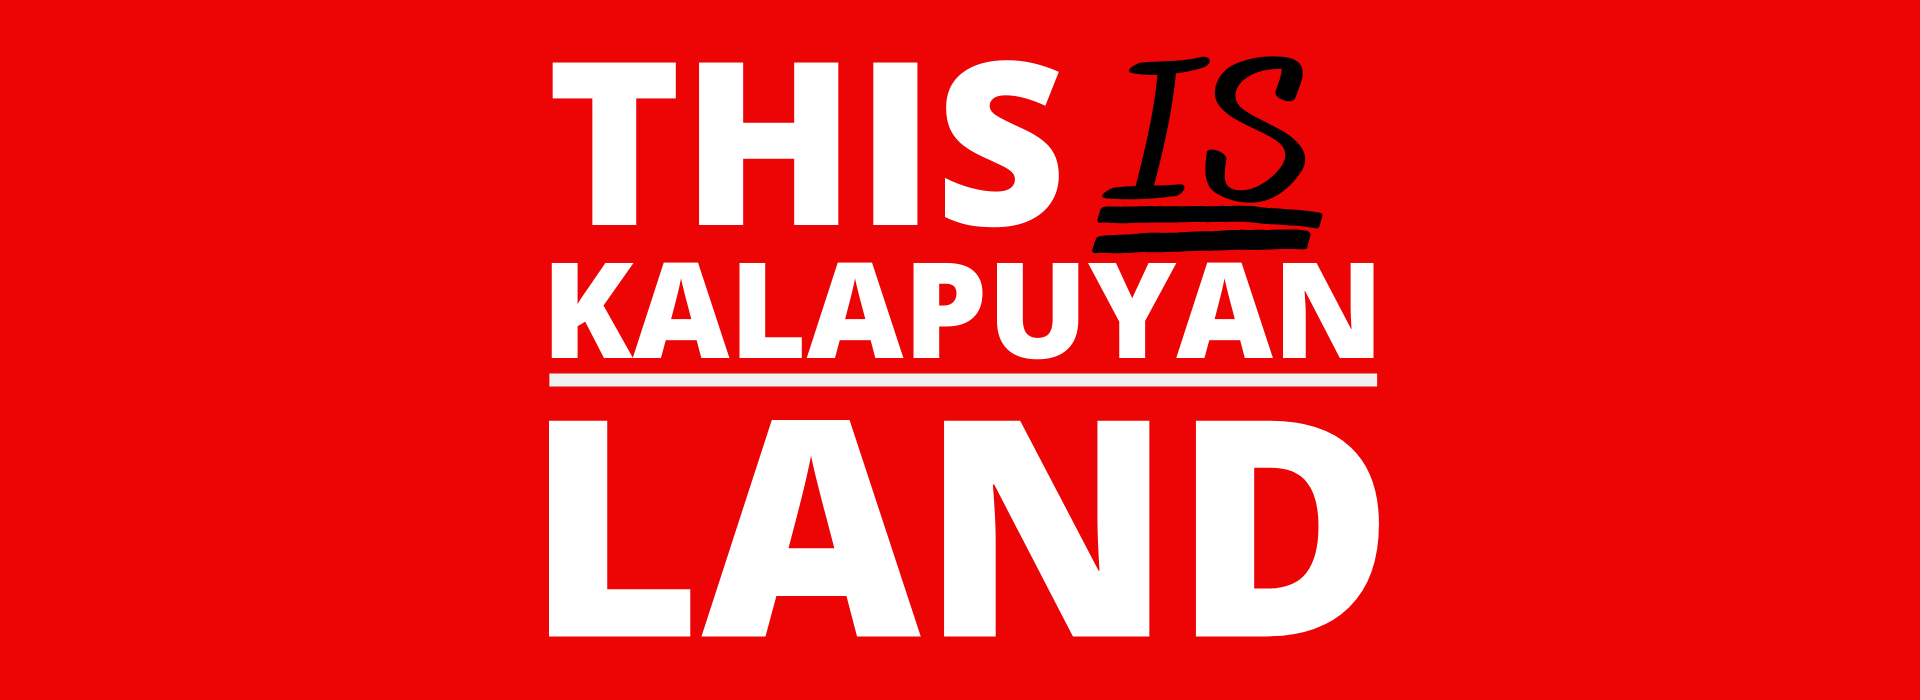 Text reading This IS Kalapuyan Land on a bright red background, with the word is emphasized.